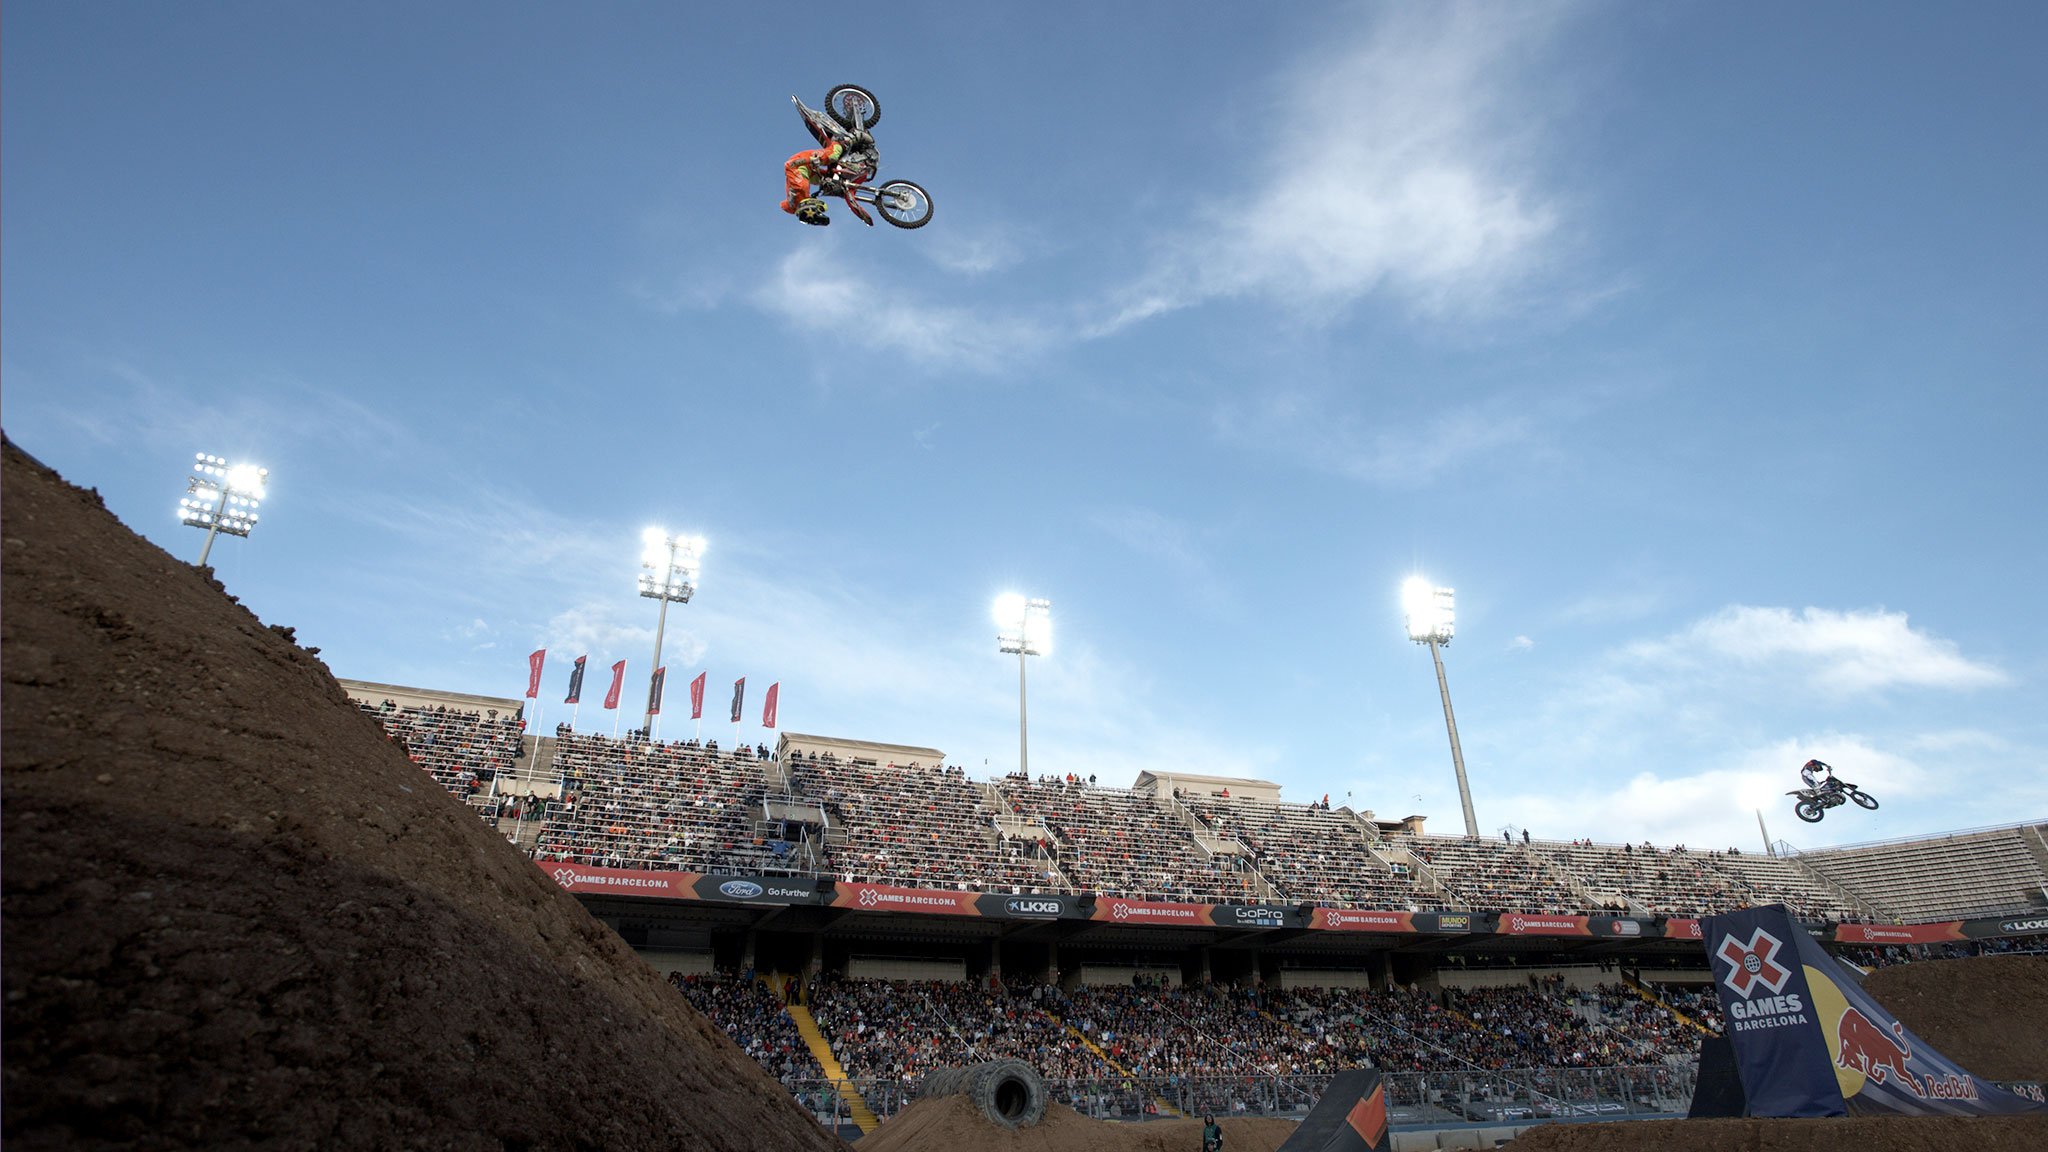 Moto X Freestyle was canceled because of high winds, but the athletes put on a show for the fans who stuck around.